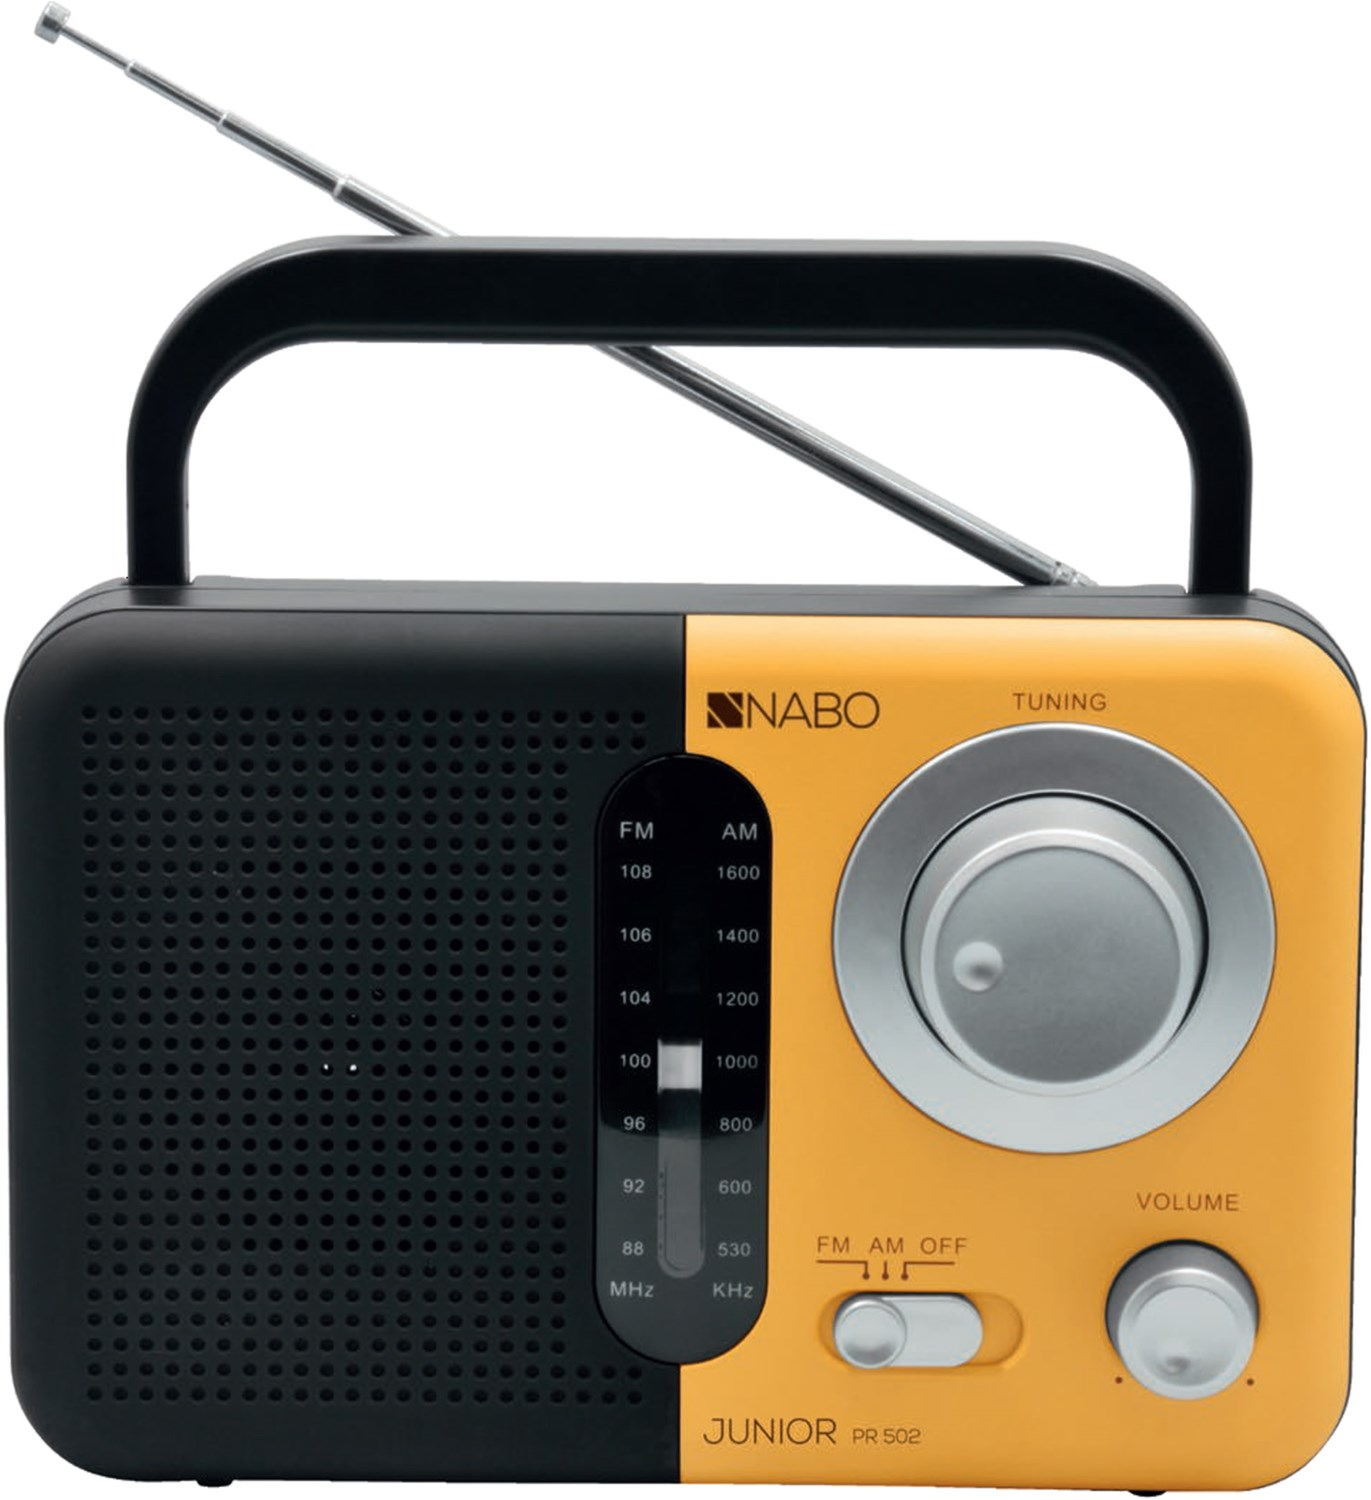 NABO JUNIOR PR 501 schwarz-orange Produktbild